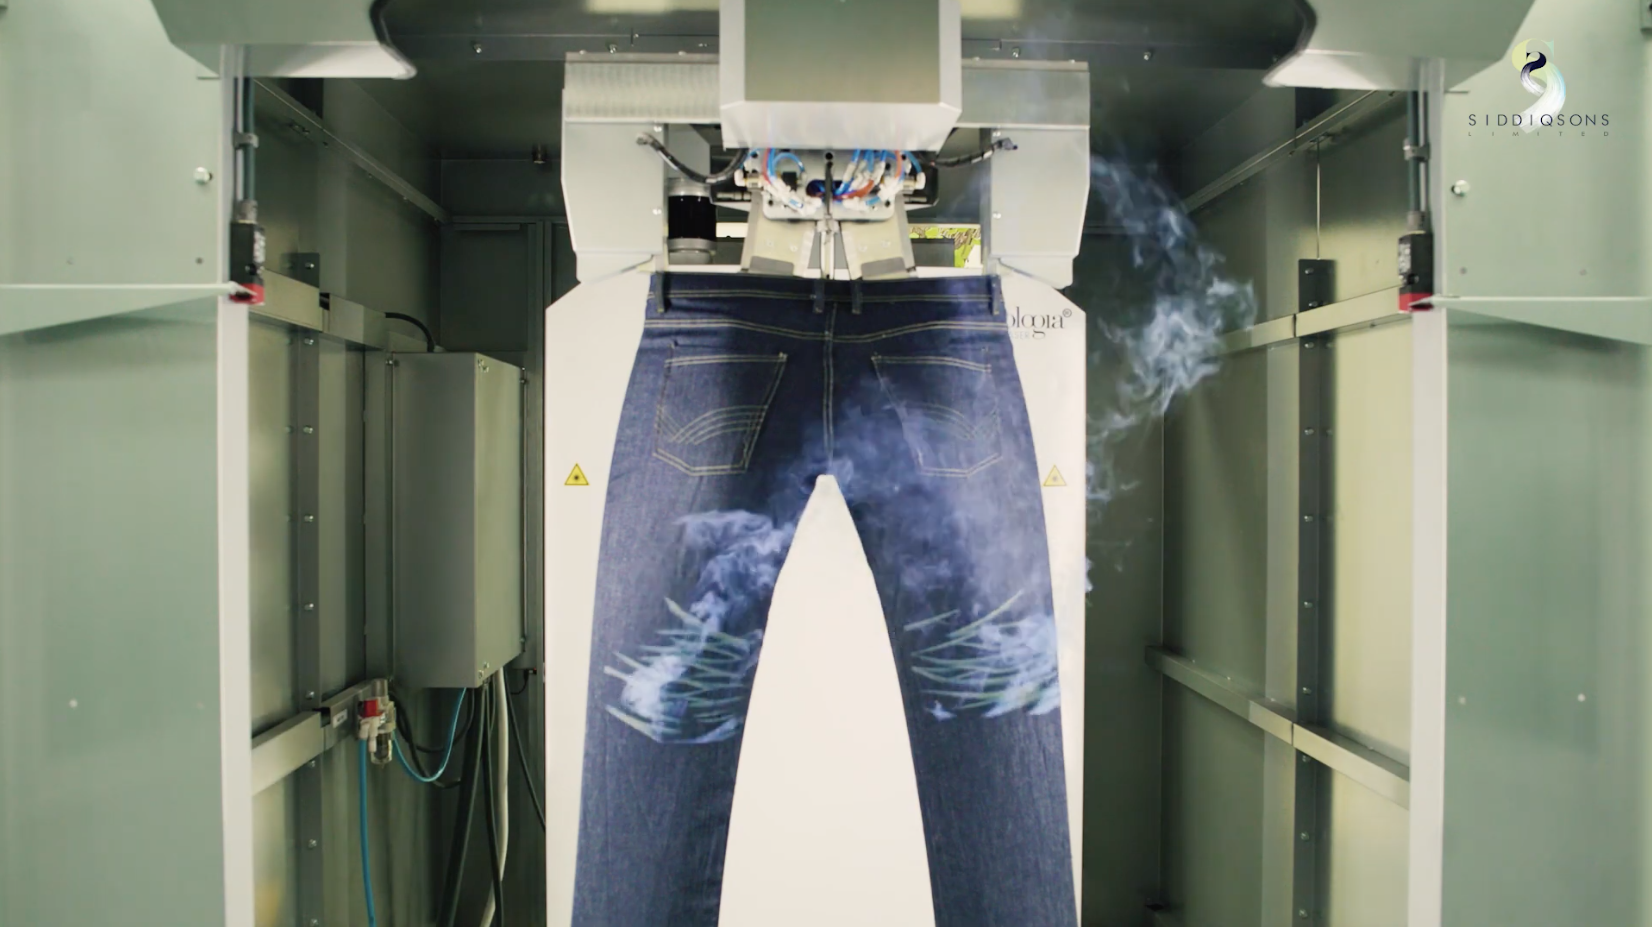 In partnership with Archroma, Siddiqsons launched Indigo H2Zero, a new method of aniline-free denim dyeing and its most sustainable yet.